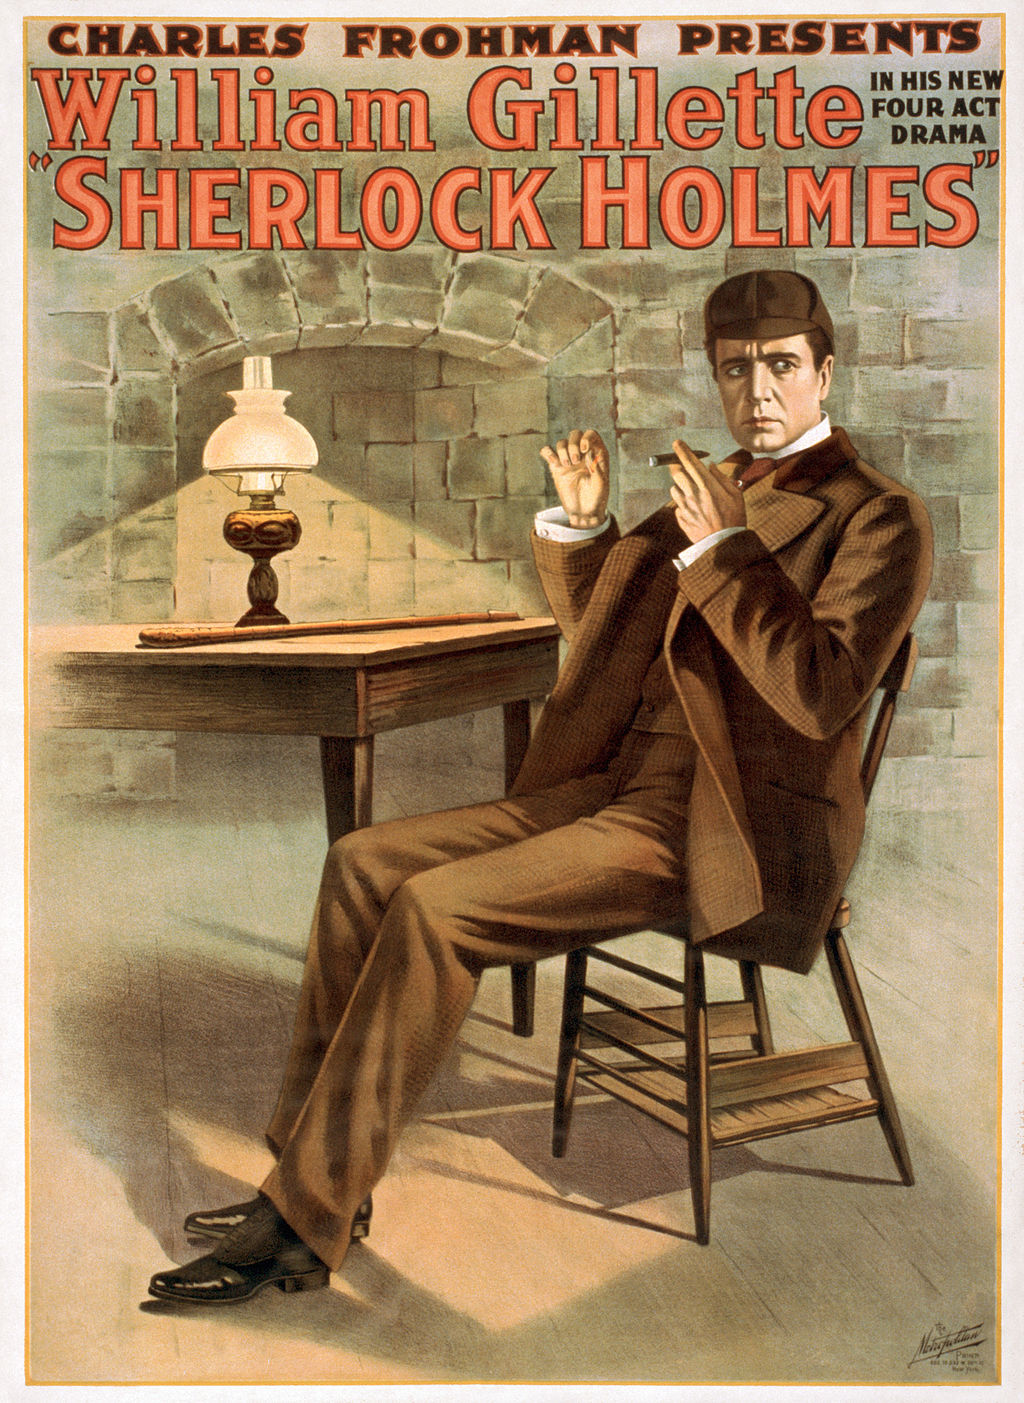 Charles_Frohman_presents_William_Gillette_in_his_new_four_act_drama,_Sherlock_Holmes_(LOC_var_1364)_(edit).jpg